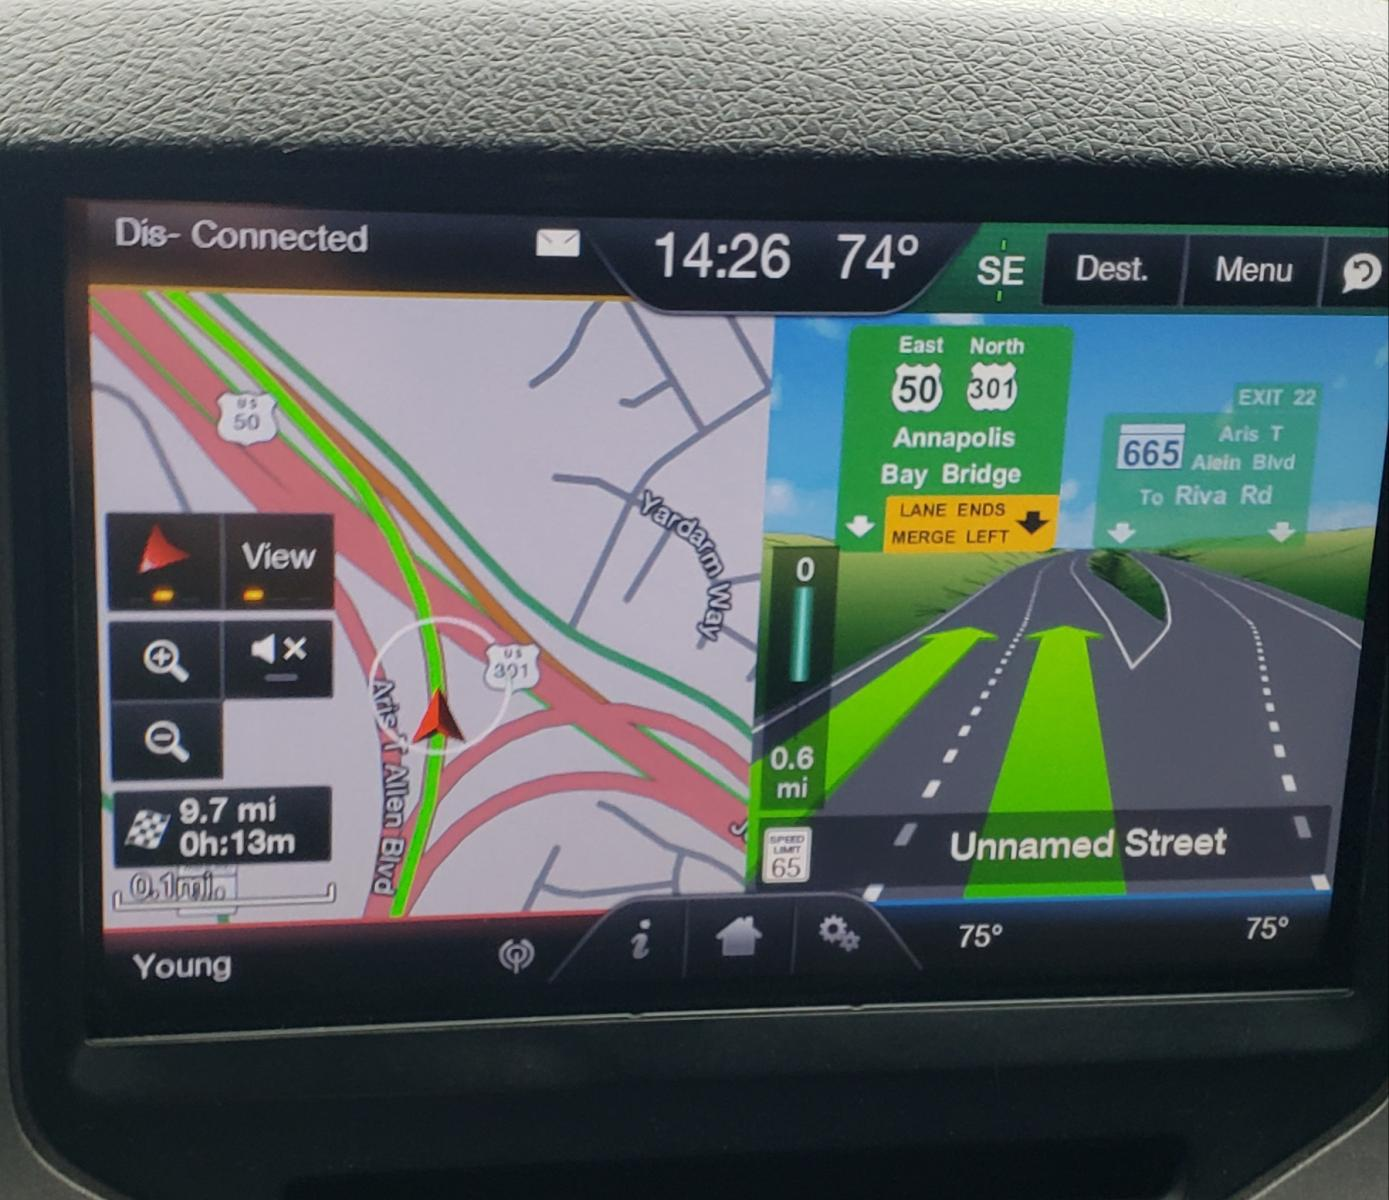 Used ForScan   added Nav to my truck   SWEET  - Ford